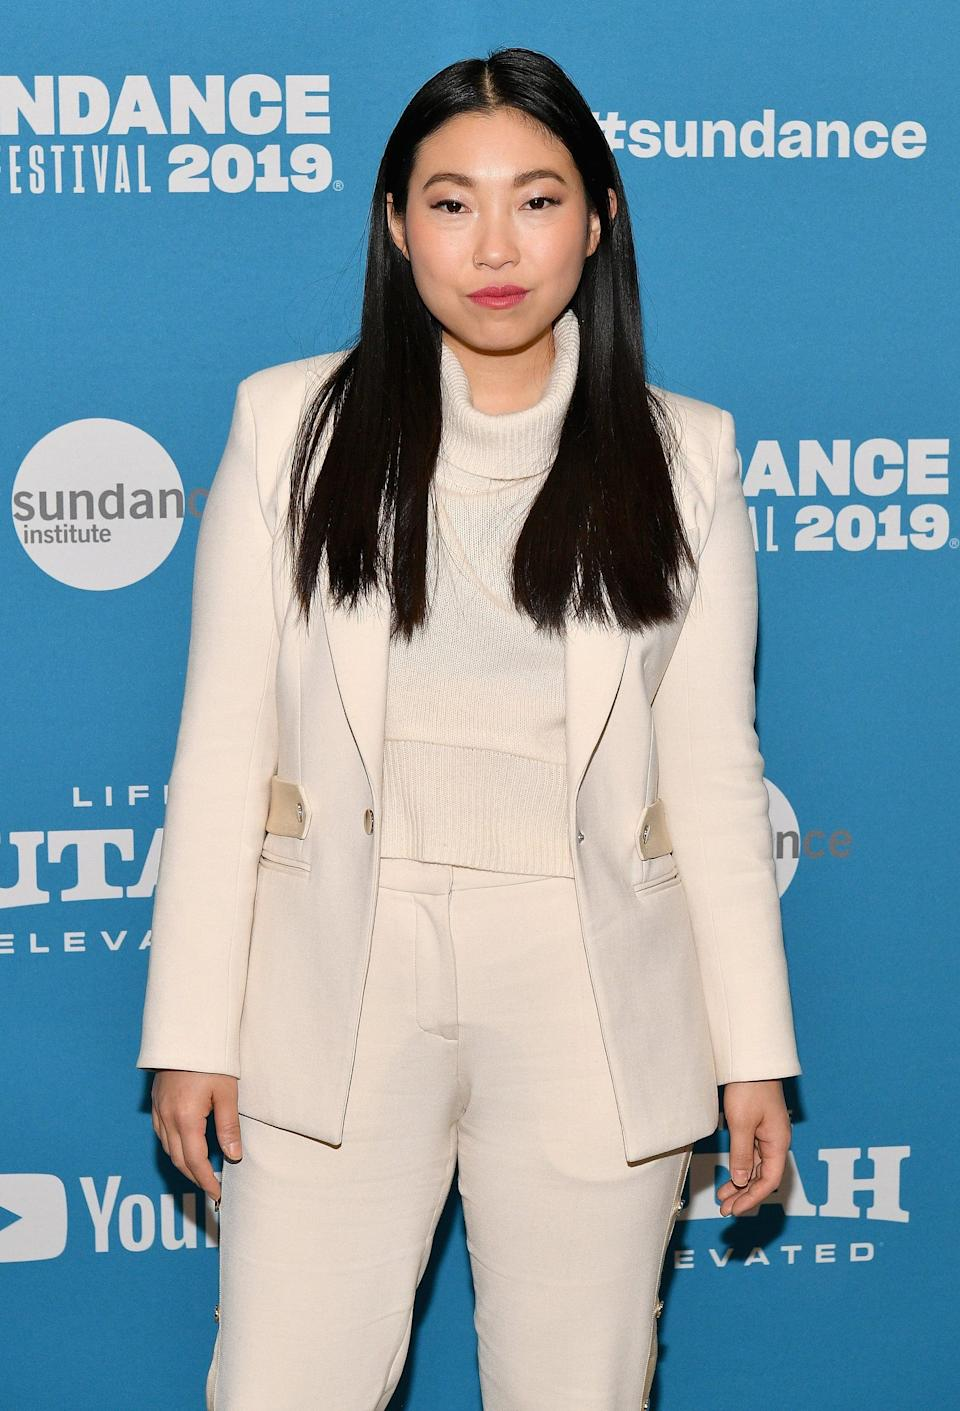 "<p>Deadline reports that the <strong>Crazy Rich Asians</strong> <a href=""http://deadline.com/2019/07/the-little-mermaid-awkwafina-jacob-tremblay-disney-reboot-1202640587/"" class=""link rapid-noclick-resp"" rel=""nofollow noopener"" target=""_blank"" data-ylk=""slk:actress is up for the role of the friendly seagull, Scuttle"">actress is up for the role of the friendly seagull, Scuttle</a>. </p>"